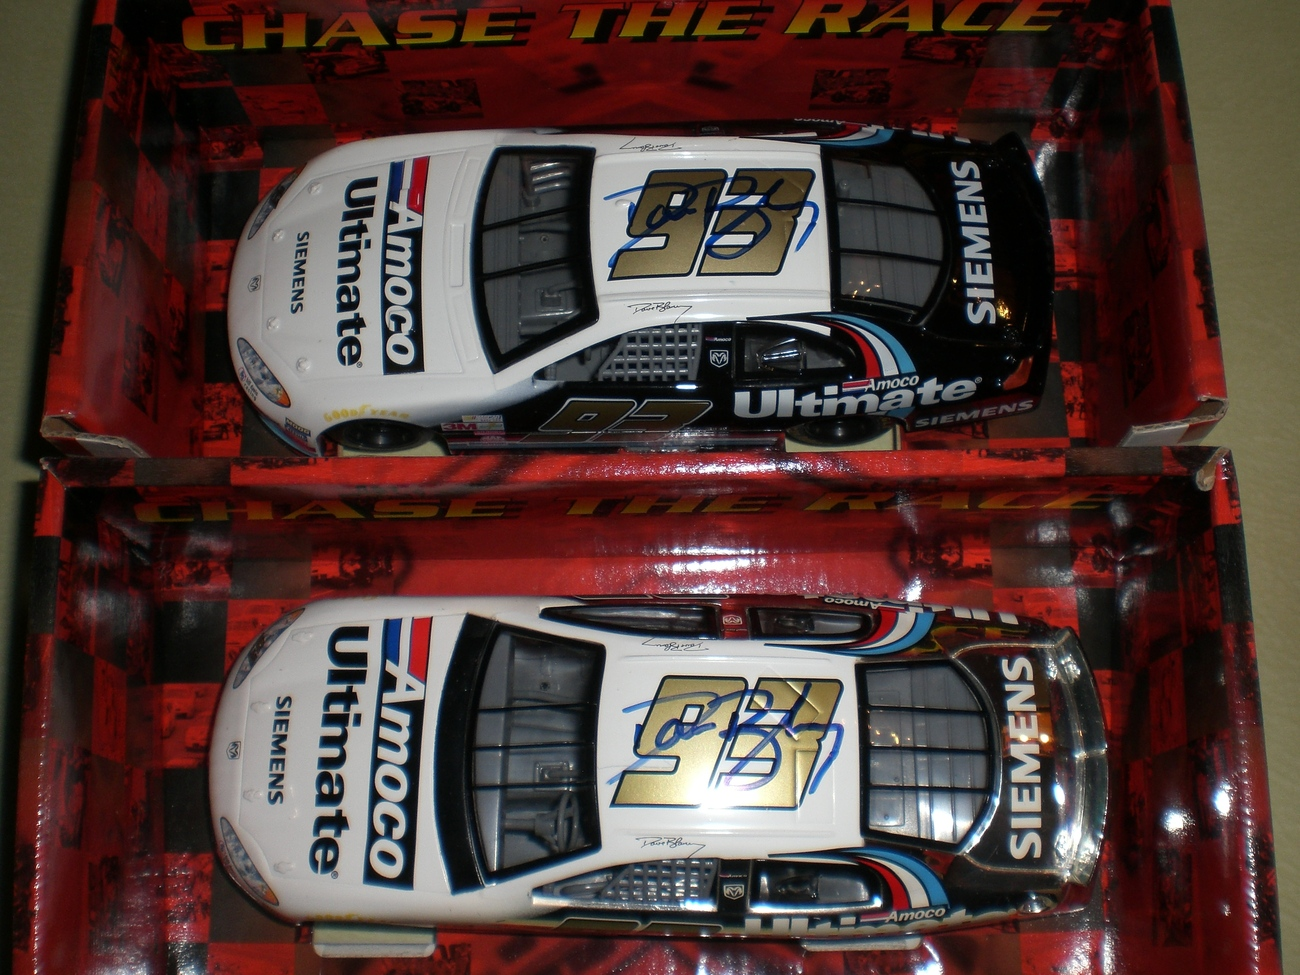 Dave Blaney SIGNED 1/24 Nascar 2 Chase diecast car LOT image 2